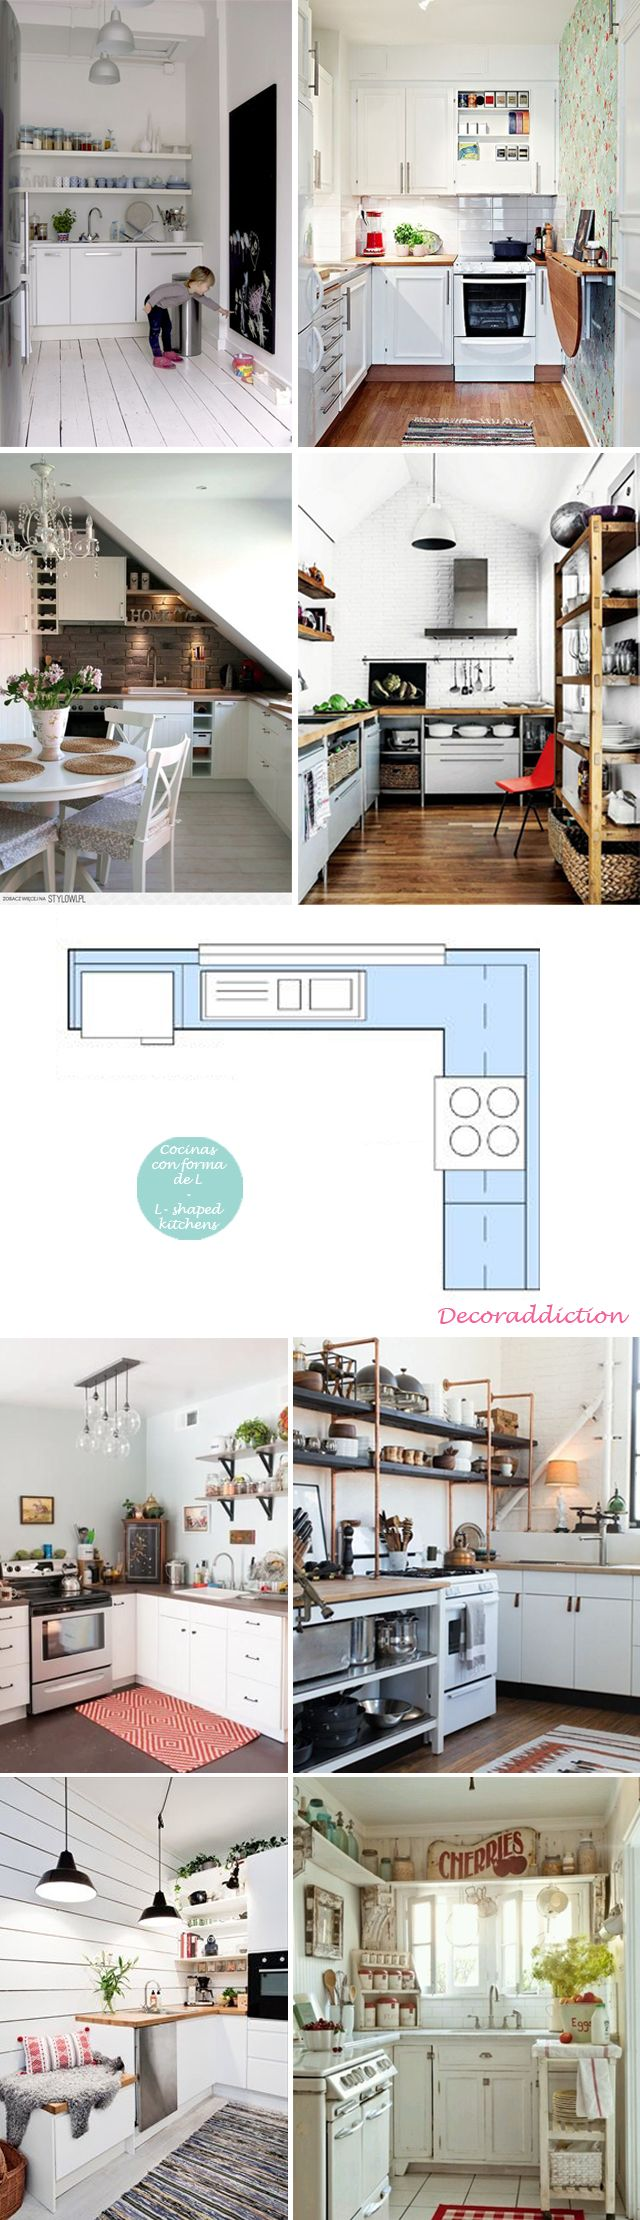 Cocinas pequeñas pero prácticas // Small but practical kitchens | http://www.decoraddiction.com/cocinas-pequenas-pero-practicas-small-but-practical-kitchens/